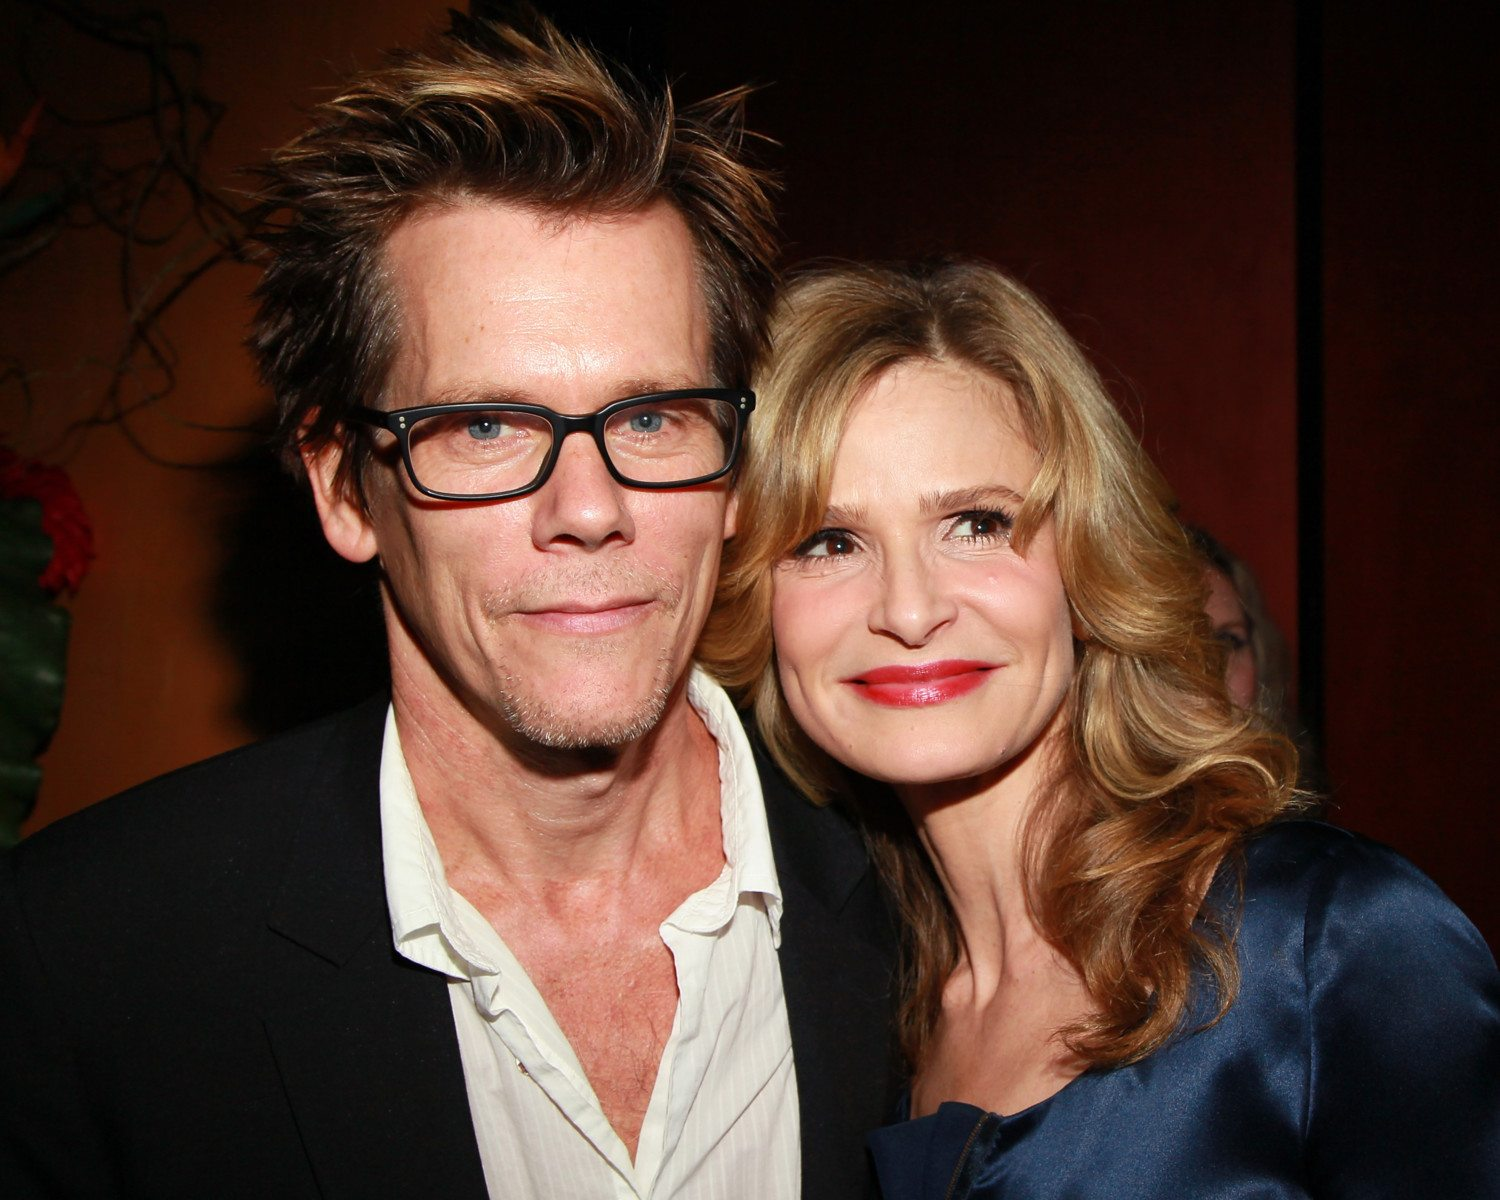 Kevin Bacon and Kyra Sedgwick photo